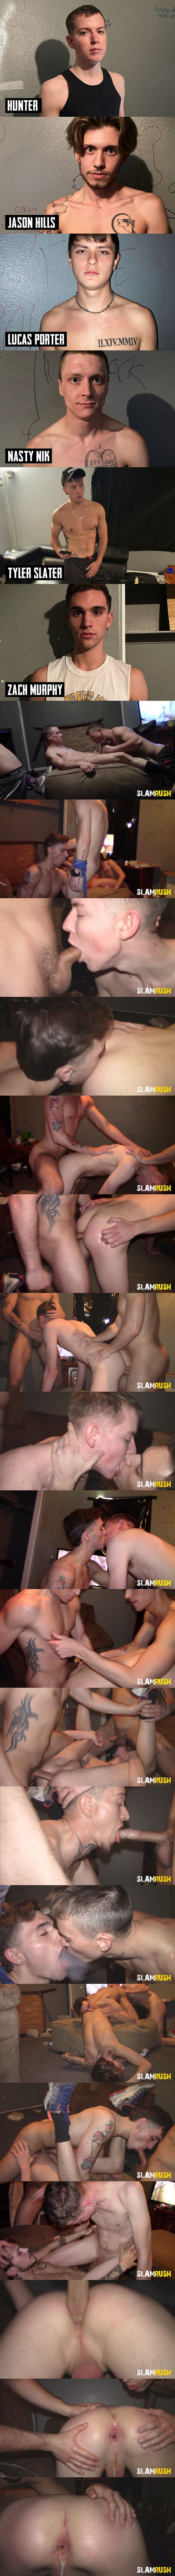 Jason Hills, Lucas Porter, Nasty Nik, Tyler Slater and Zach Murphy gangbang and creampie newbie Hunter in Hunter's bottoming debut in Dead End Dump at Slamrush 01